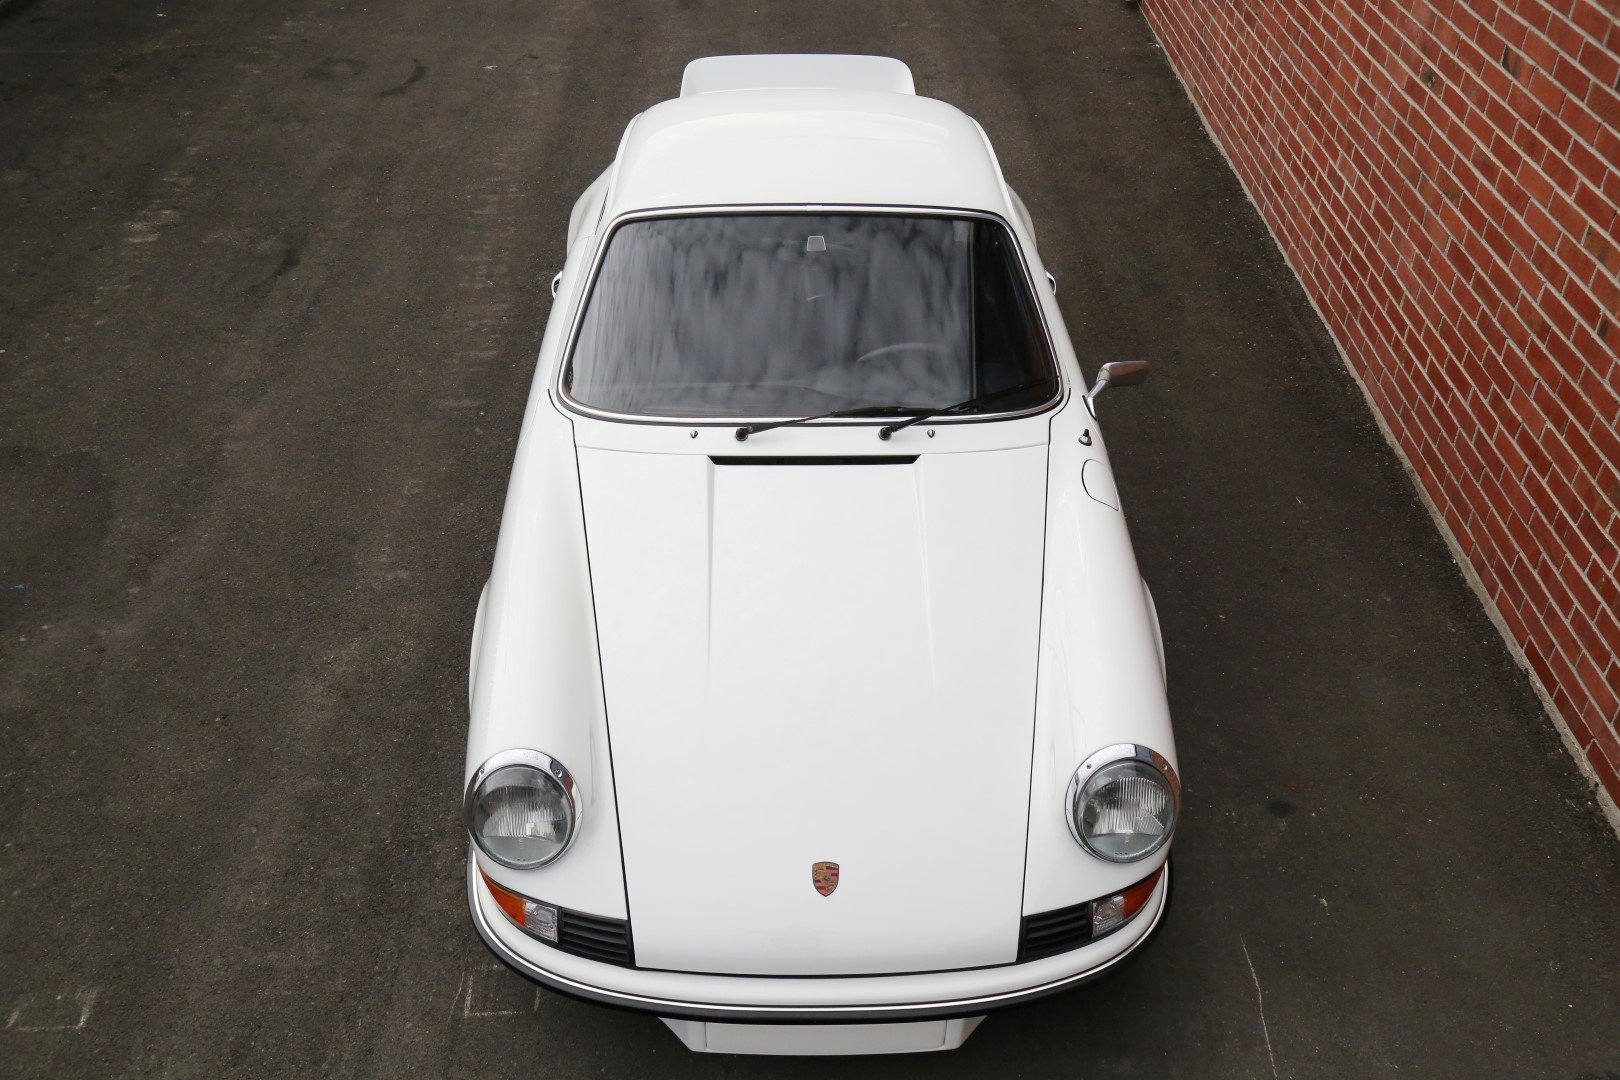 Porsche-911-Carrera-RS-2.7-1973-for-sale-27